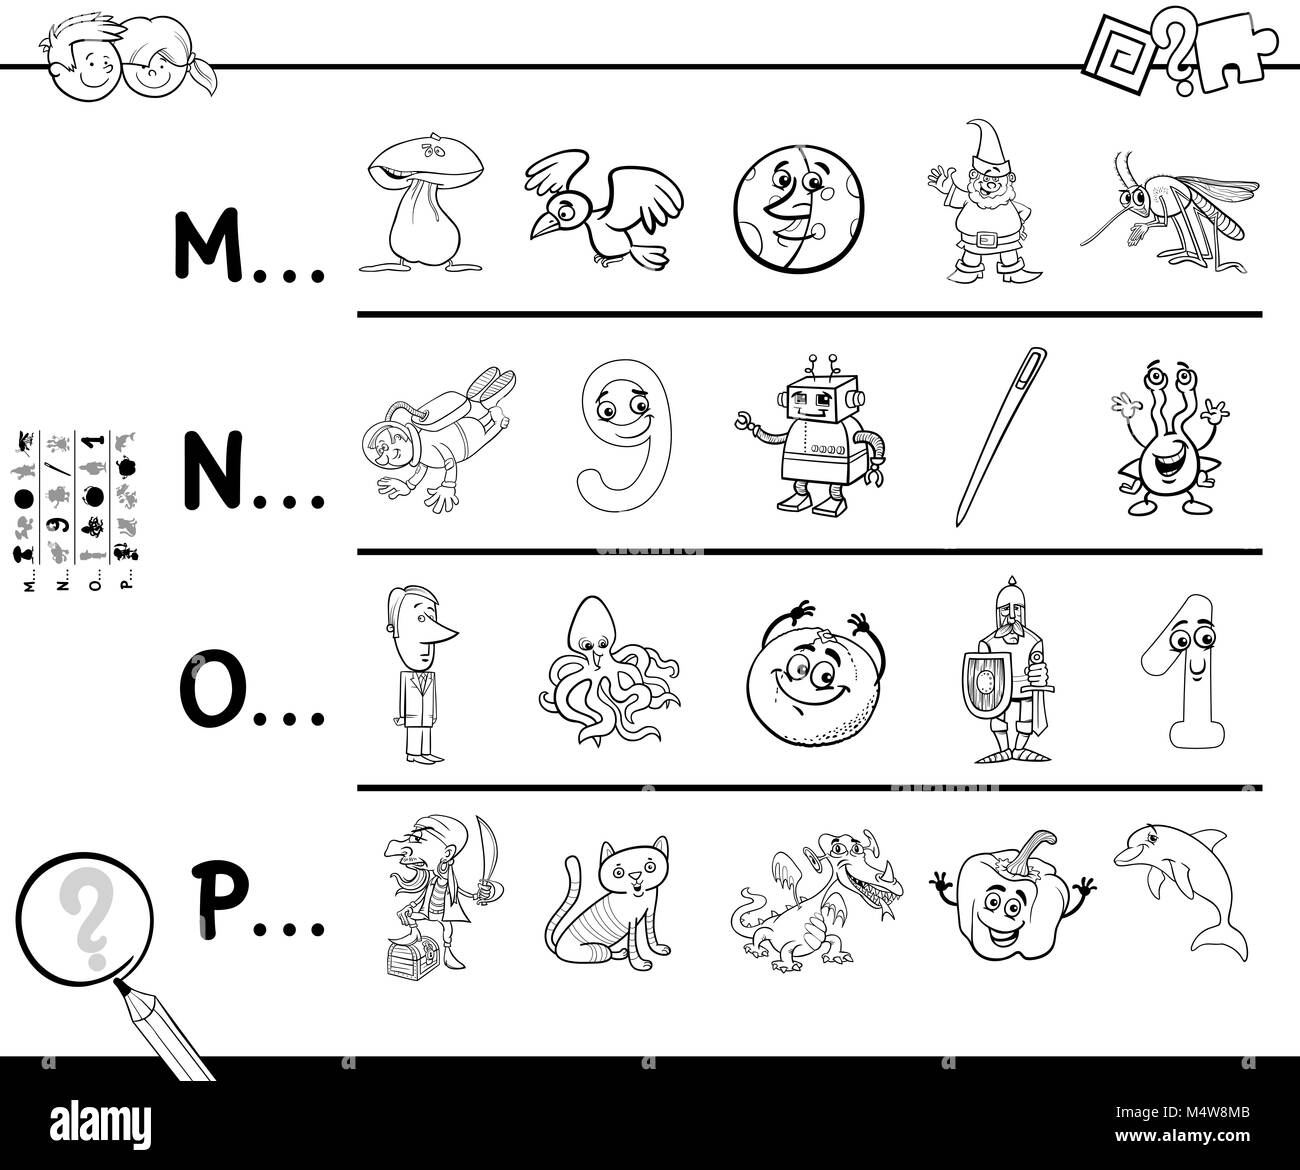 Cartoon Letter M Stock Photos Amp Cartoon Letter M Stock